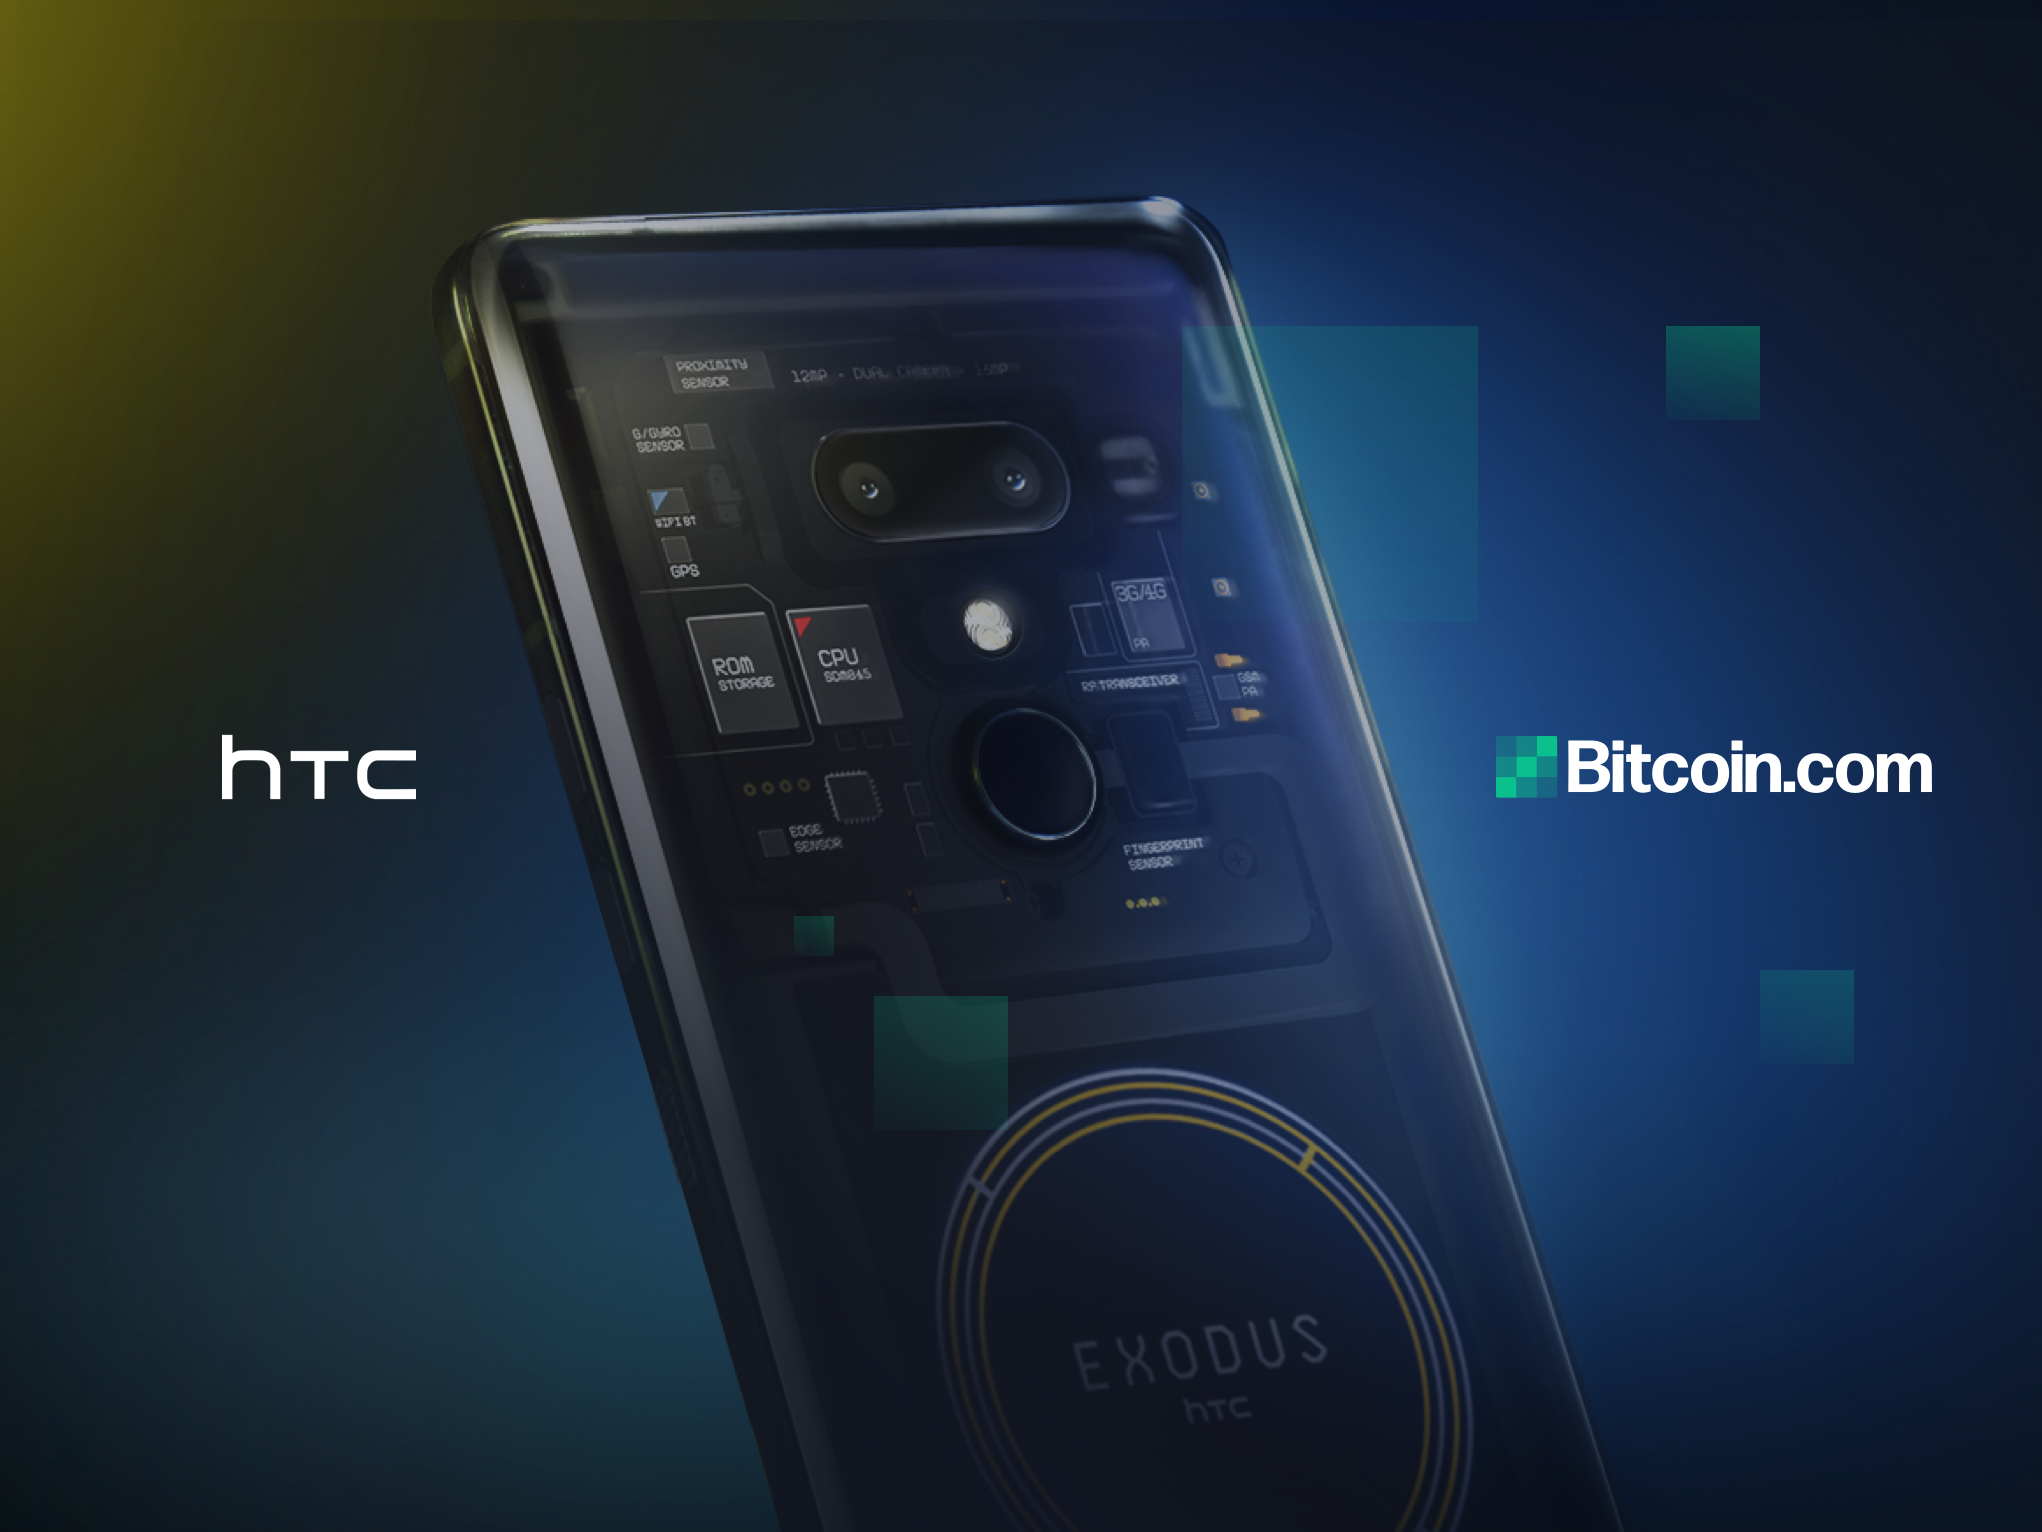 PR: Bitcoin.com Announces Partnership With Telecommunications Manufacturer HTC - Bitcoin News